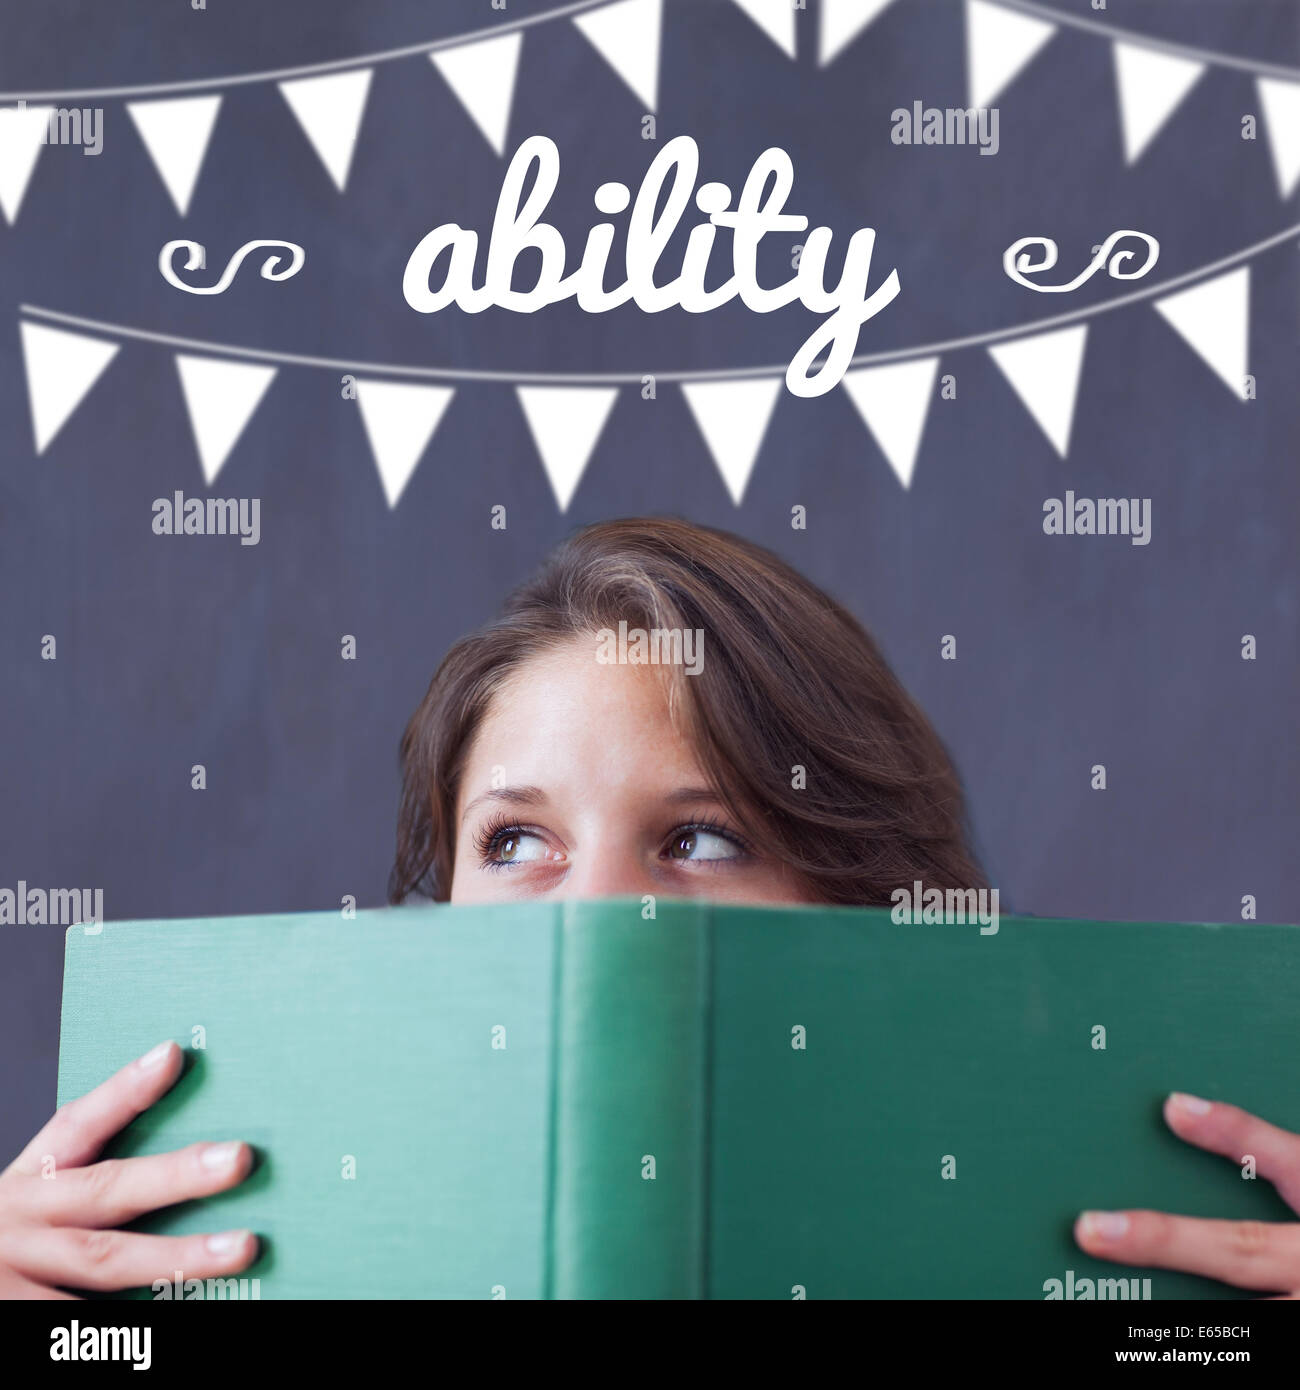 Ability against student holding book - Stock Image